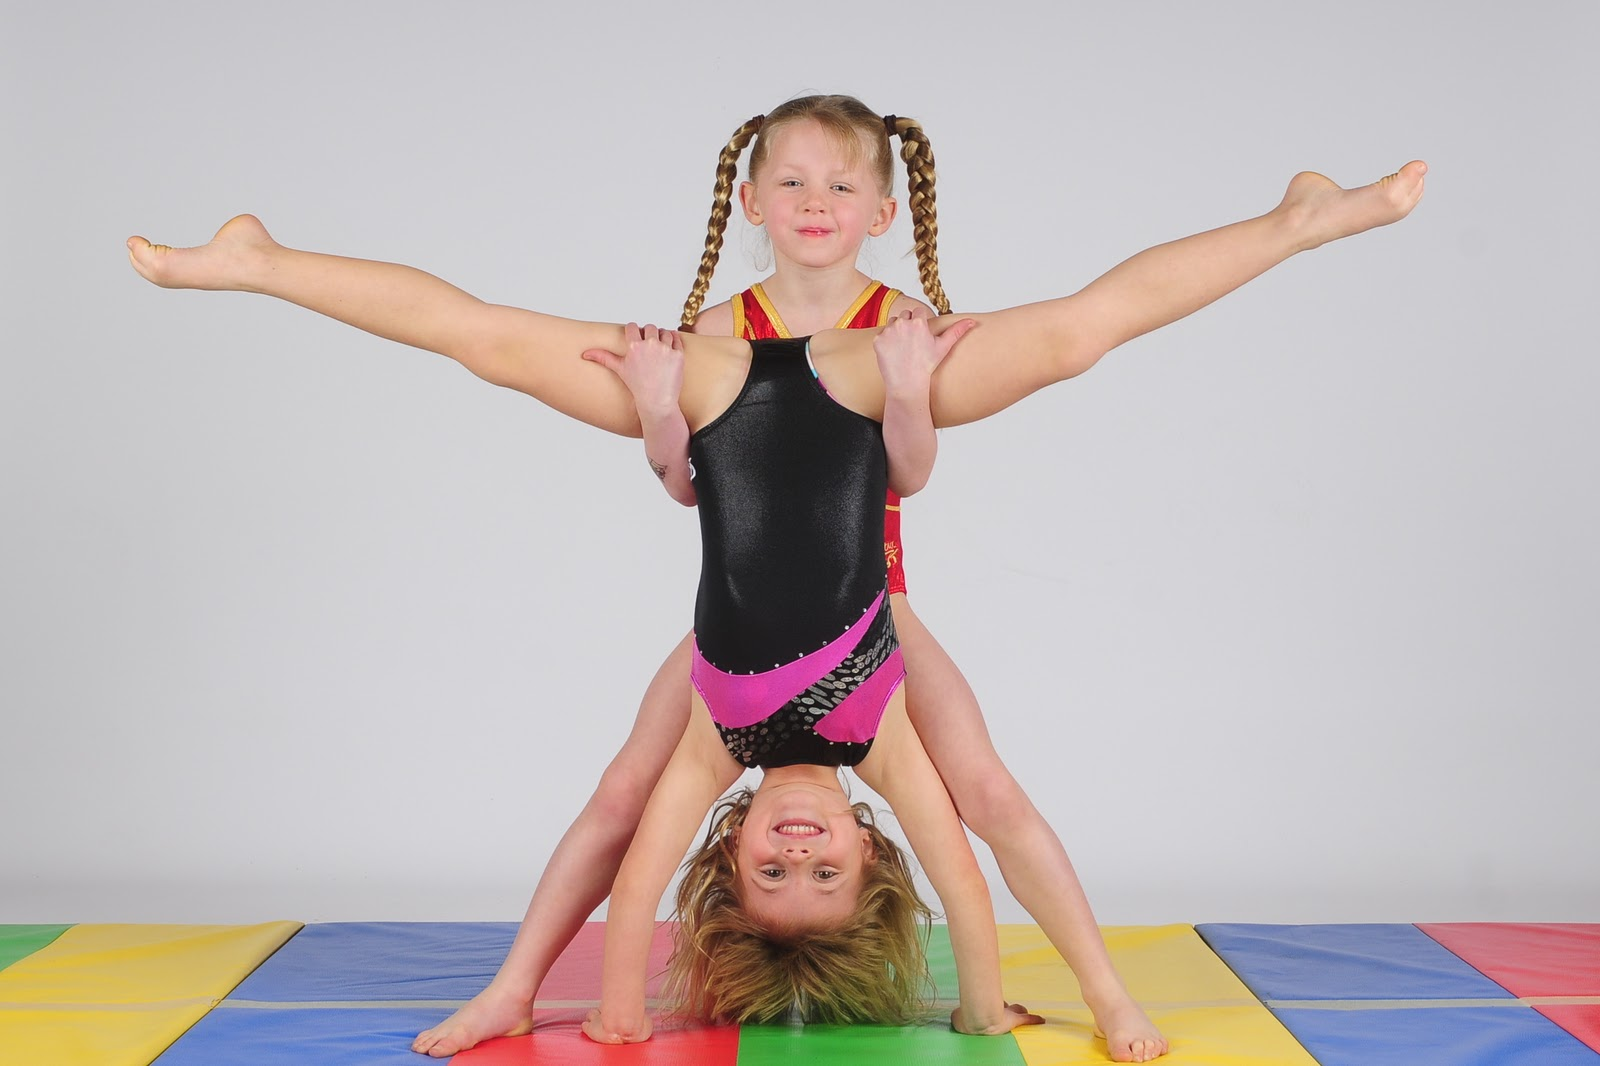 the little girl gymnastics images - usseek.com